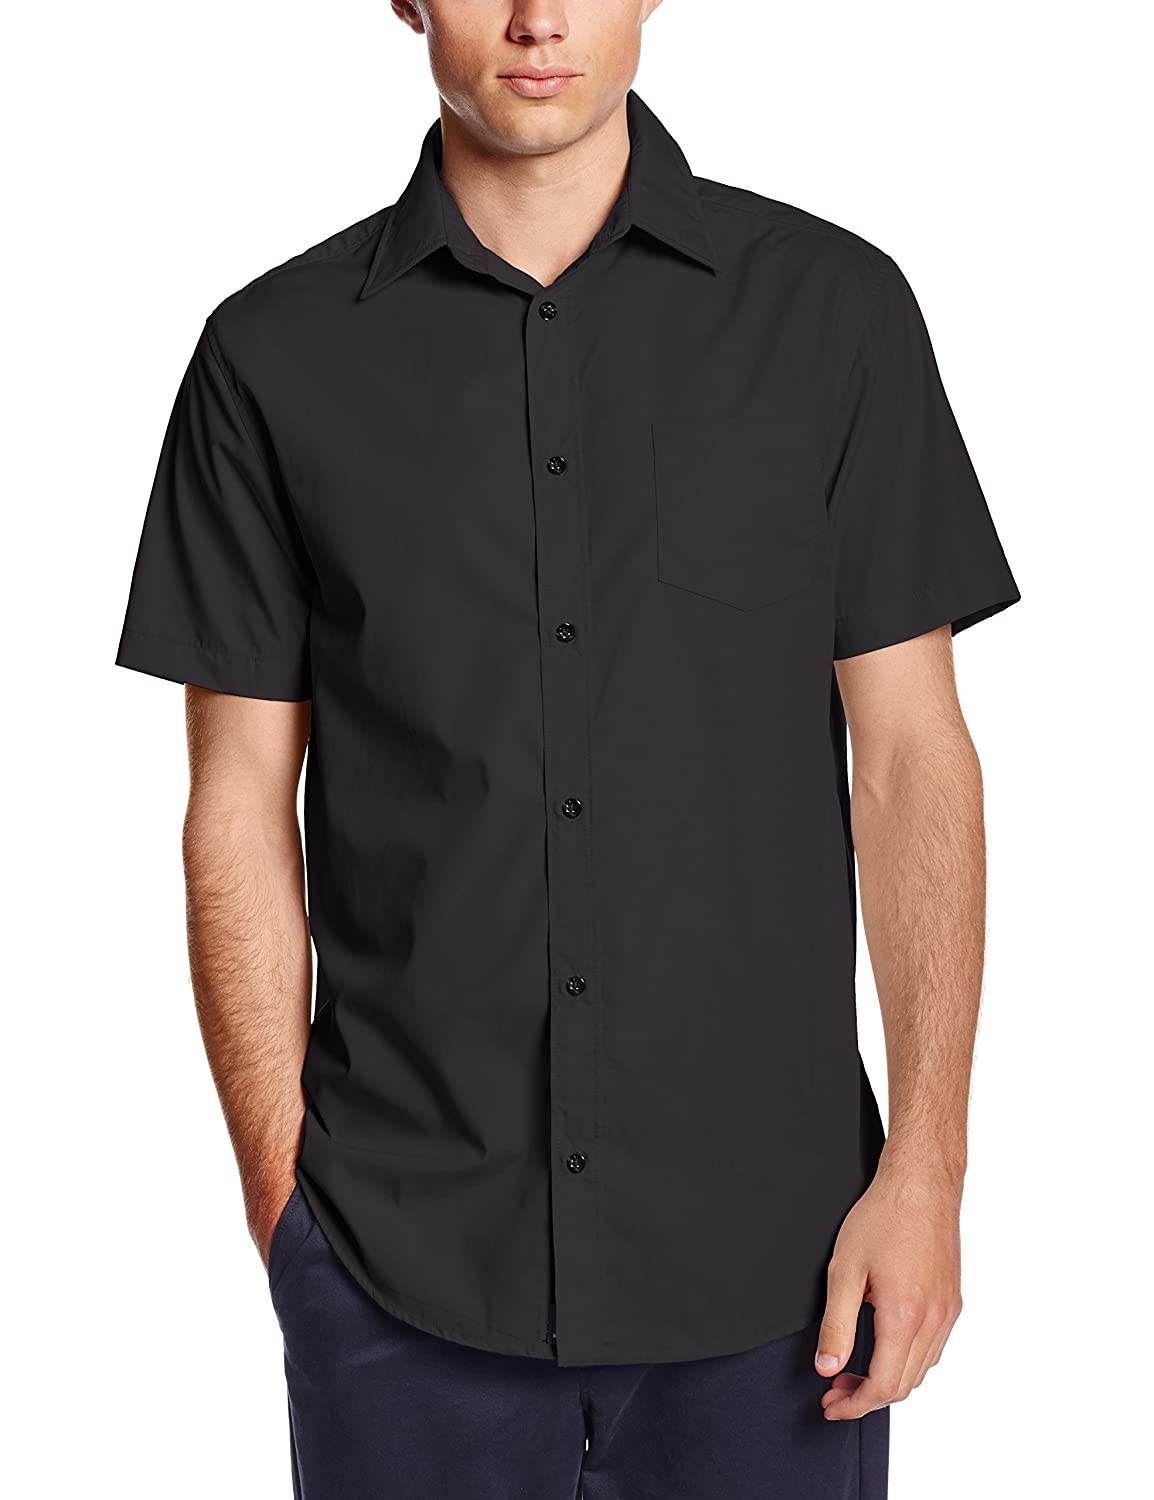 Lee Uniforms Mens Short Sleeve Dress Shirt At Amazon Mens Clothing